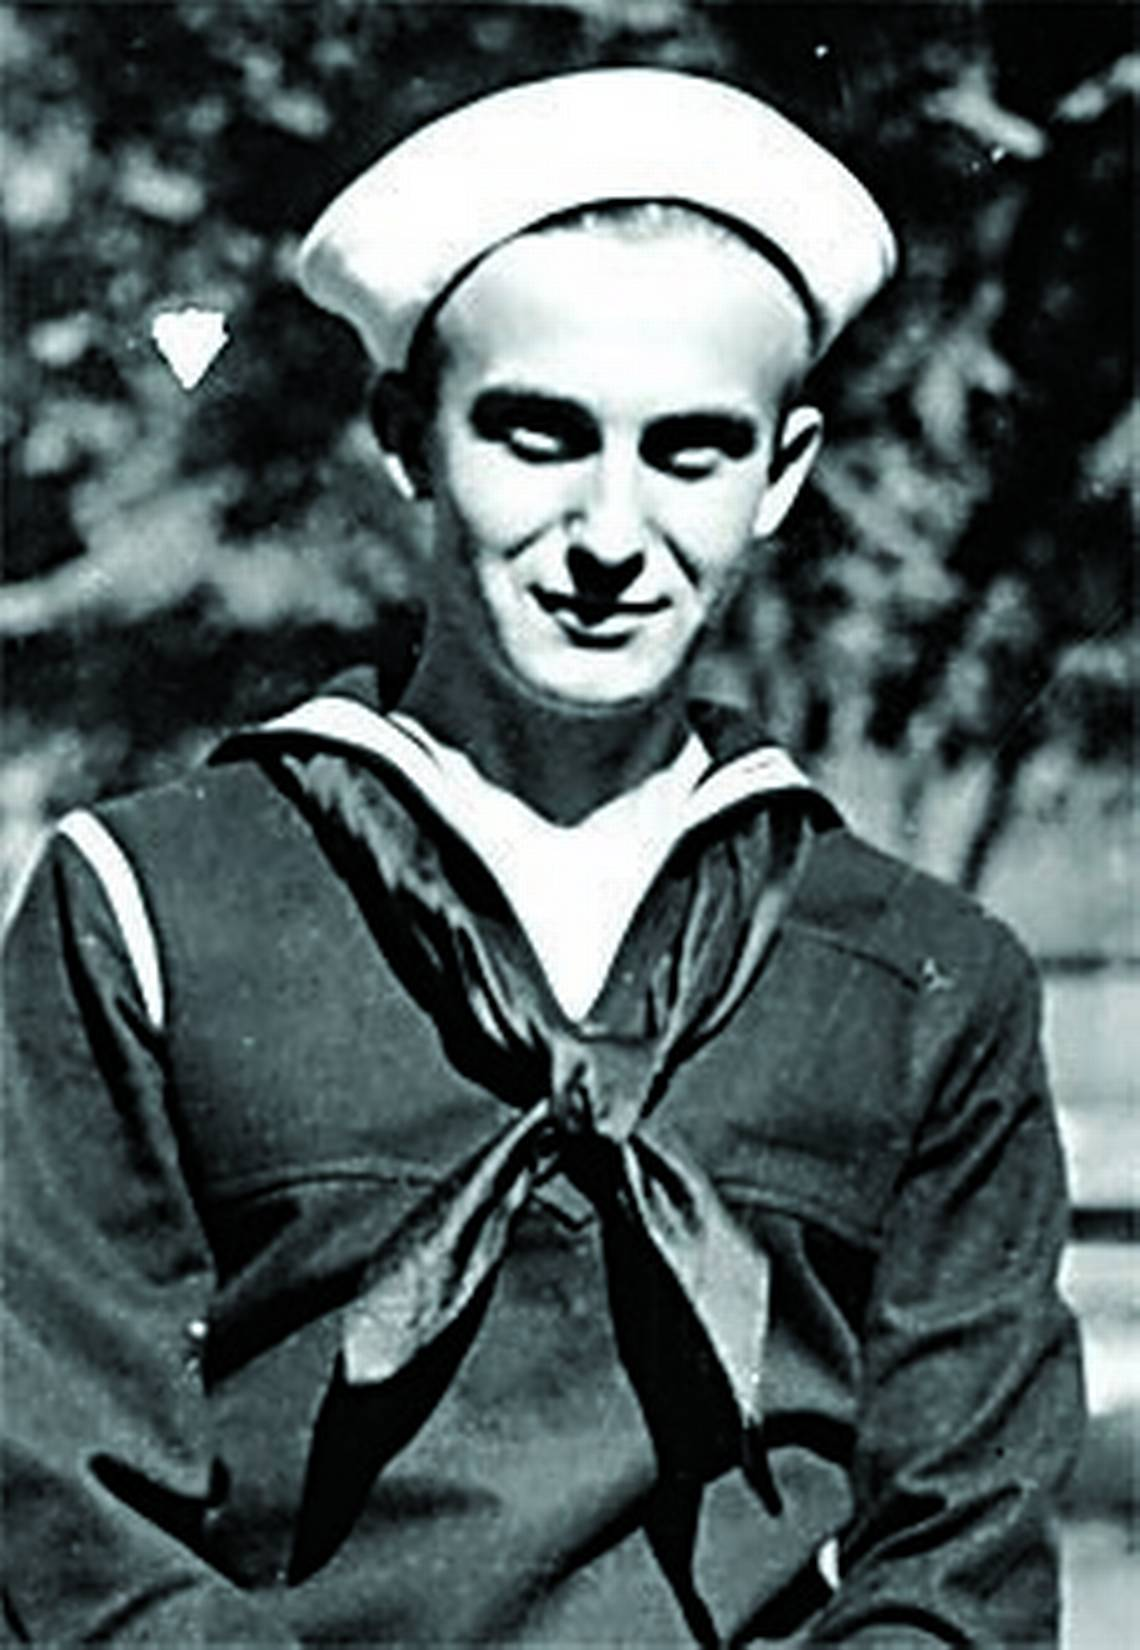 Nearly 8 Decades Later, Remains Of Trenton Sailor Who Died